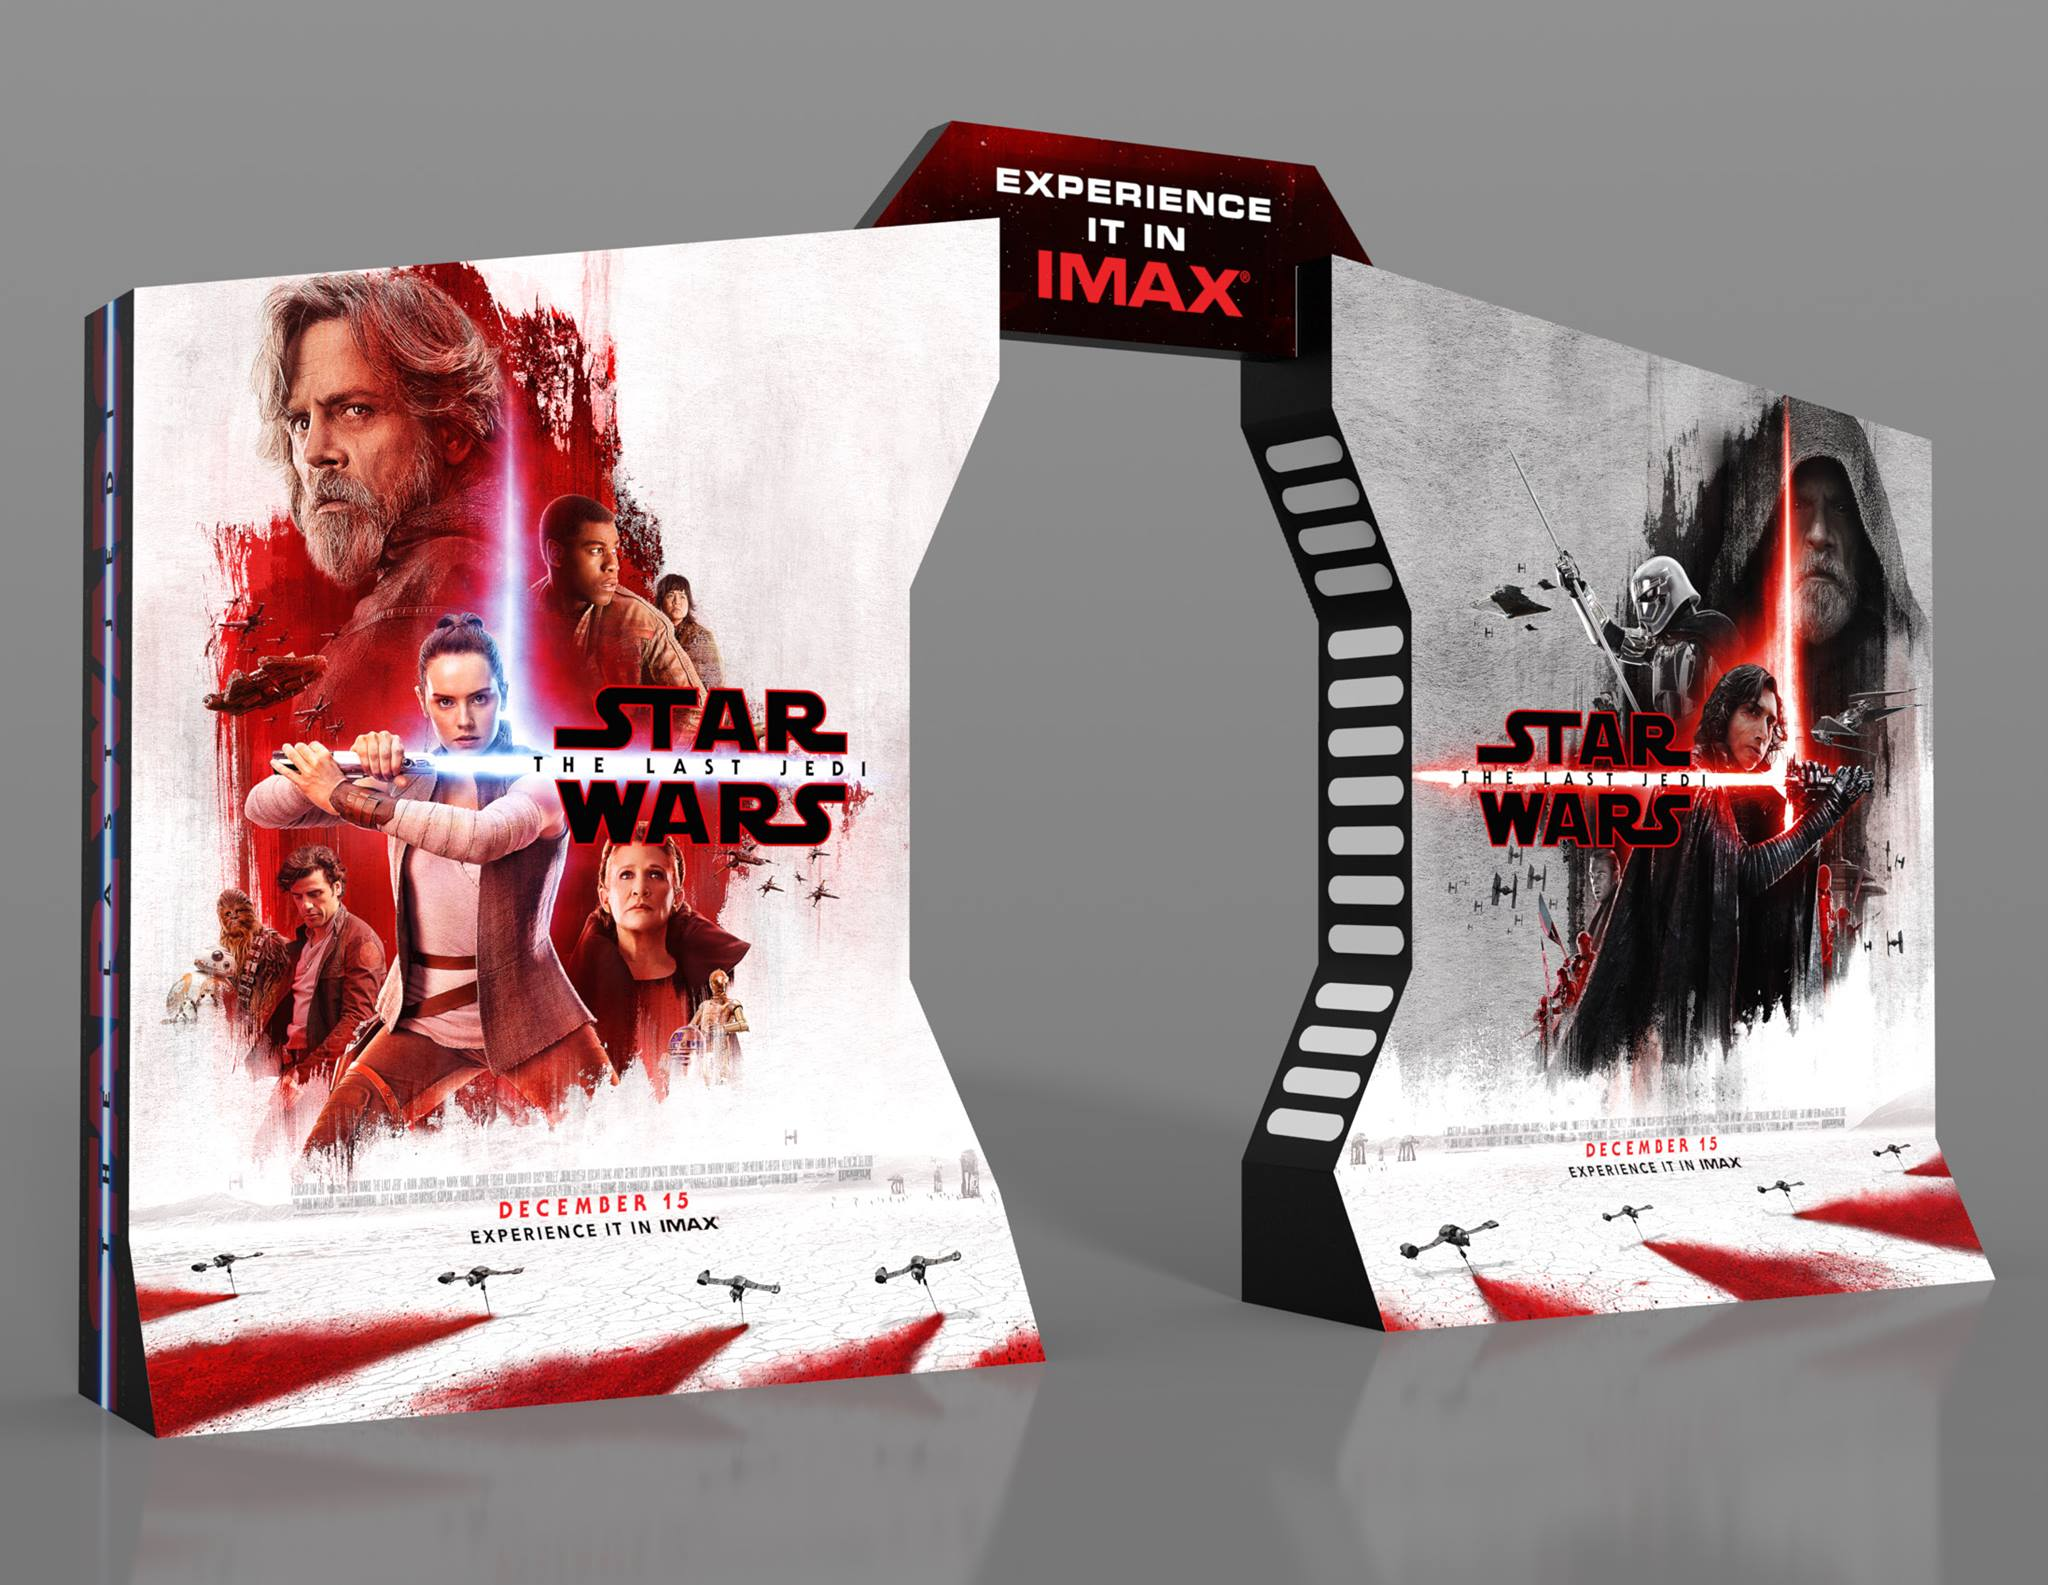 Star Wars: The Last Jedi IMAX display